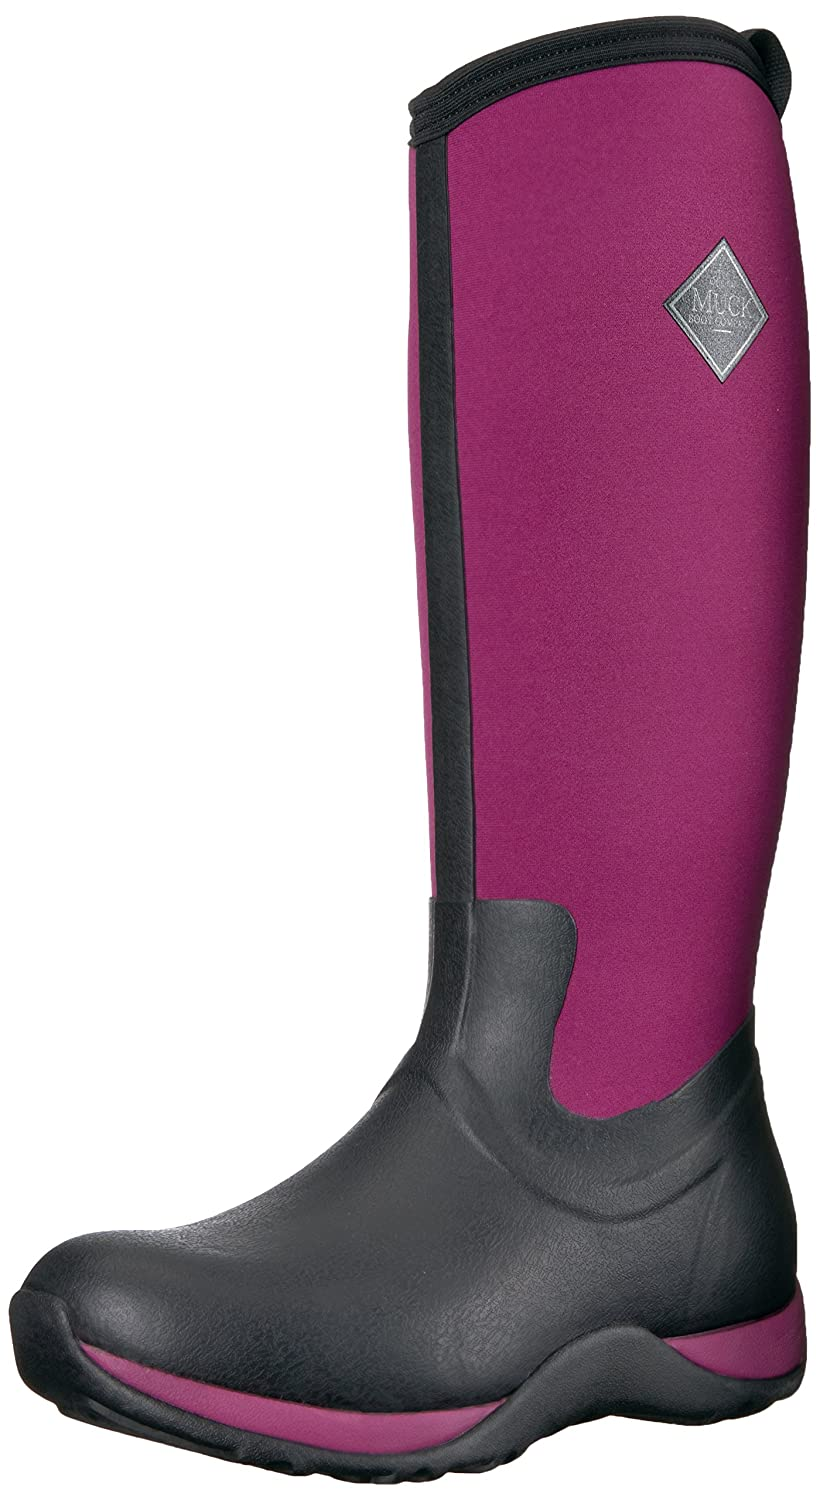 Muck Boot Women's Arctic Adventure Tall Snow Boot B00BN60YHY 6 B(M) US|Black/Maroon